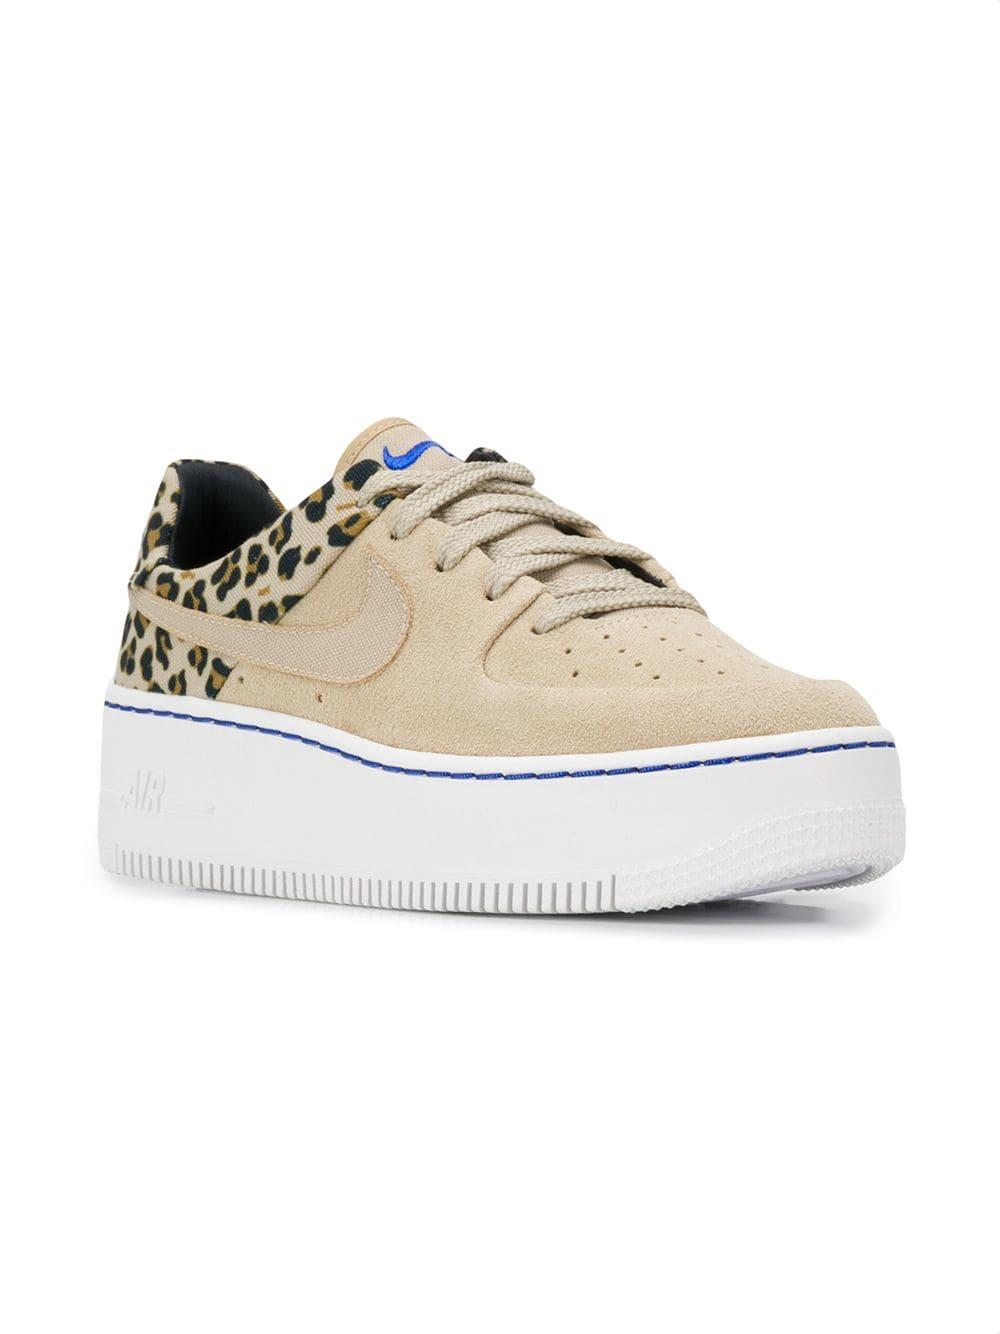 quality design 43752 1e517 Lyst - Nike Air Force One Sneakers